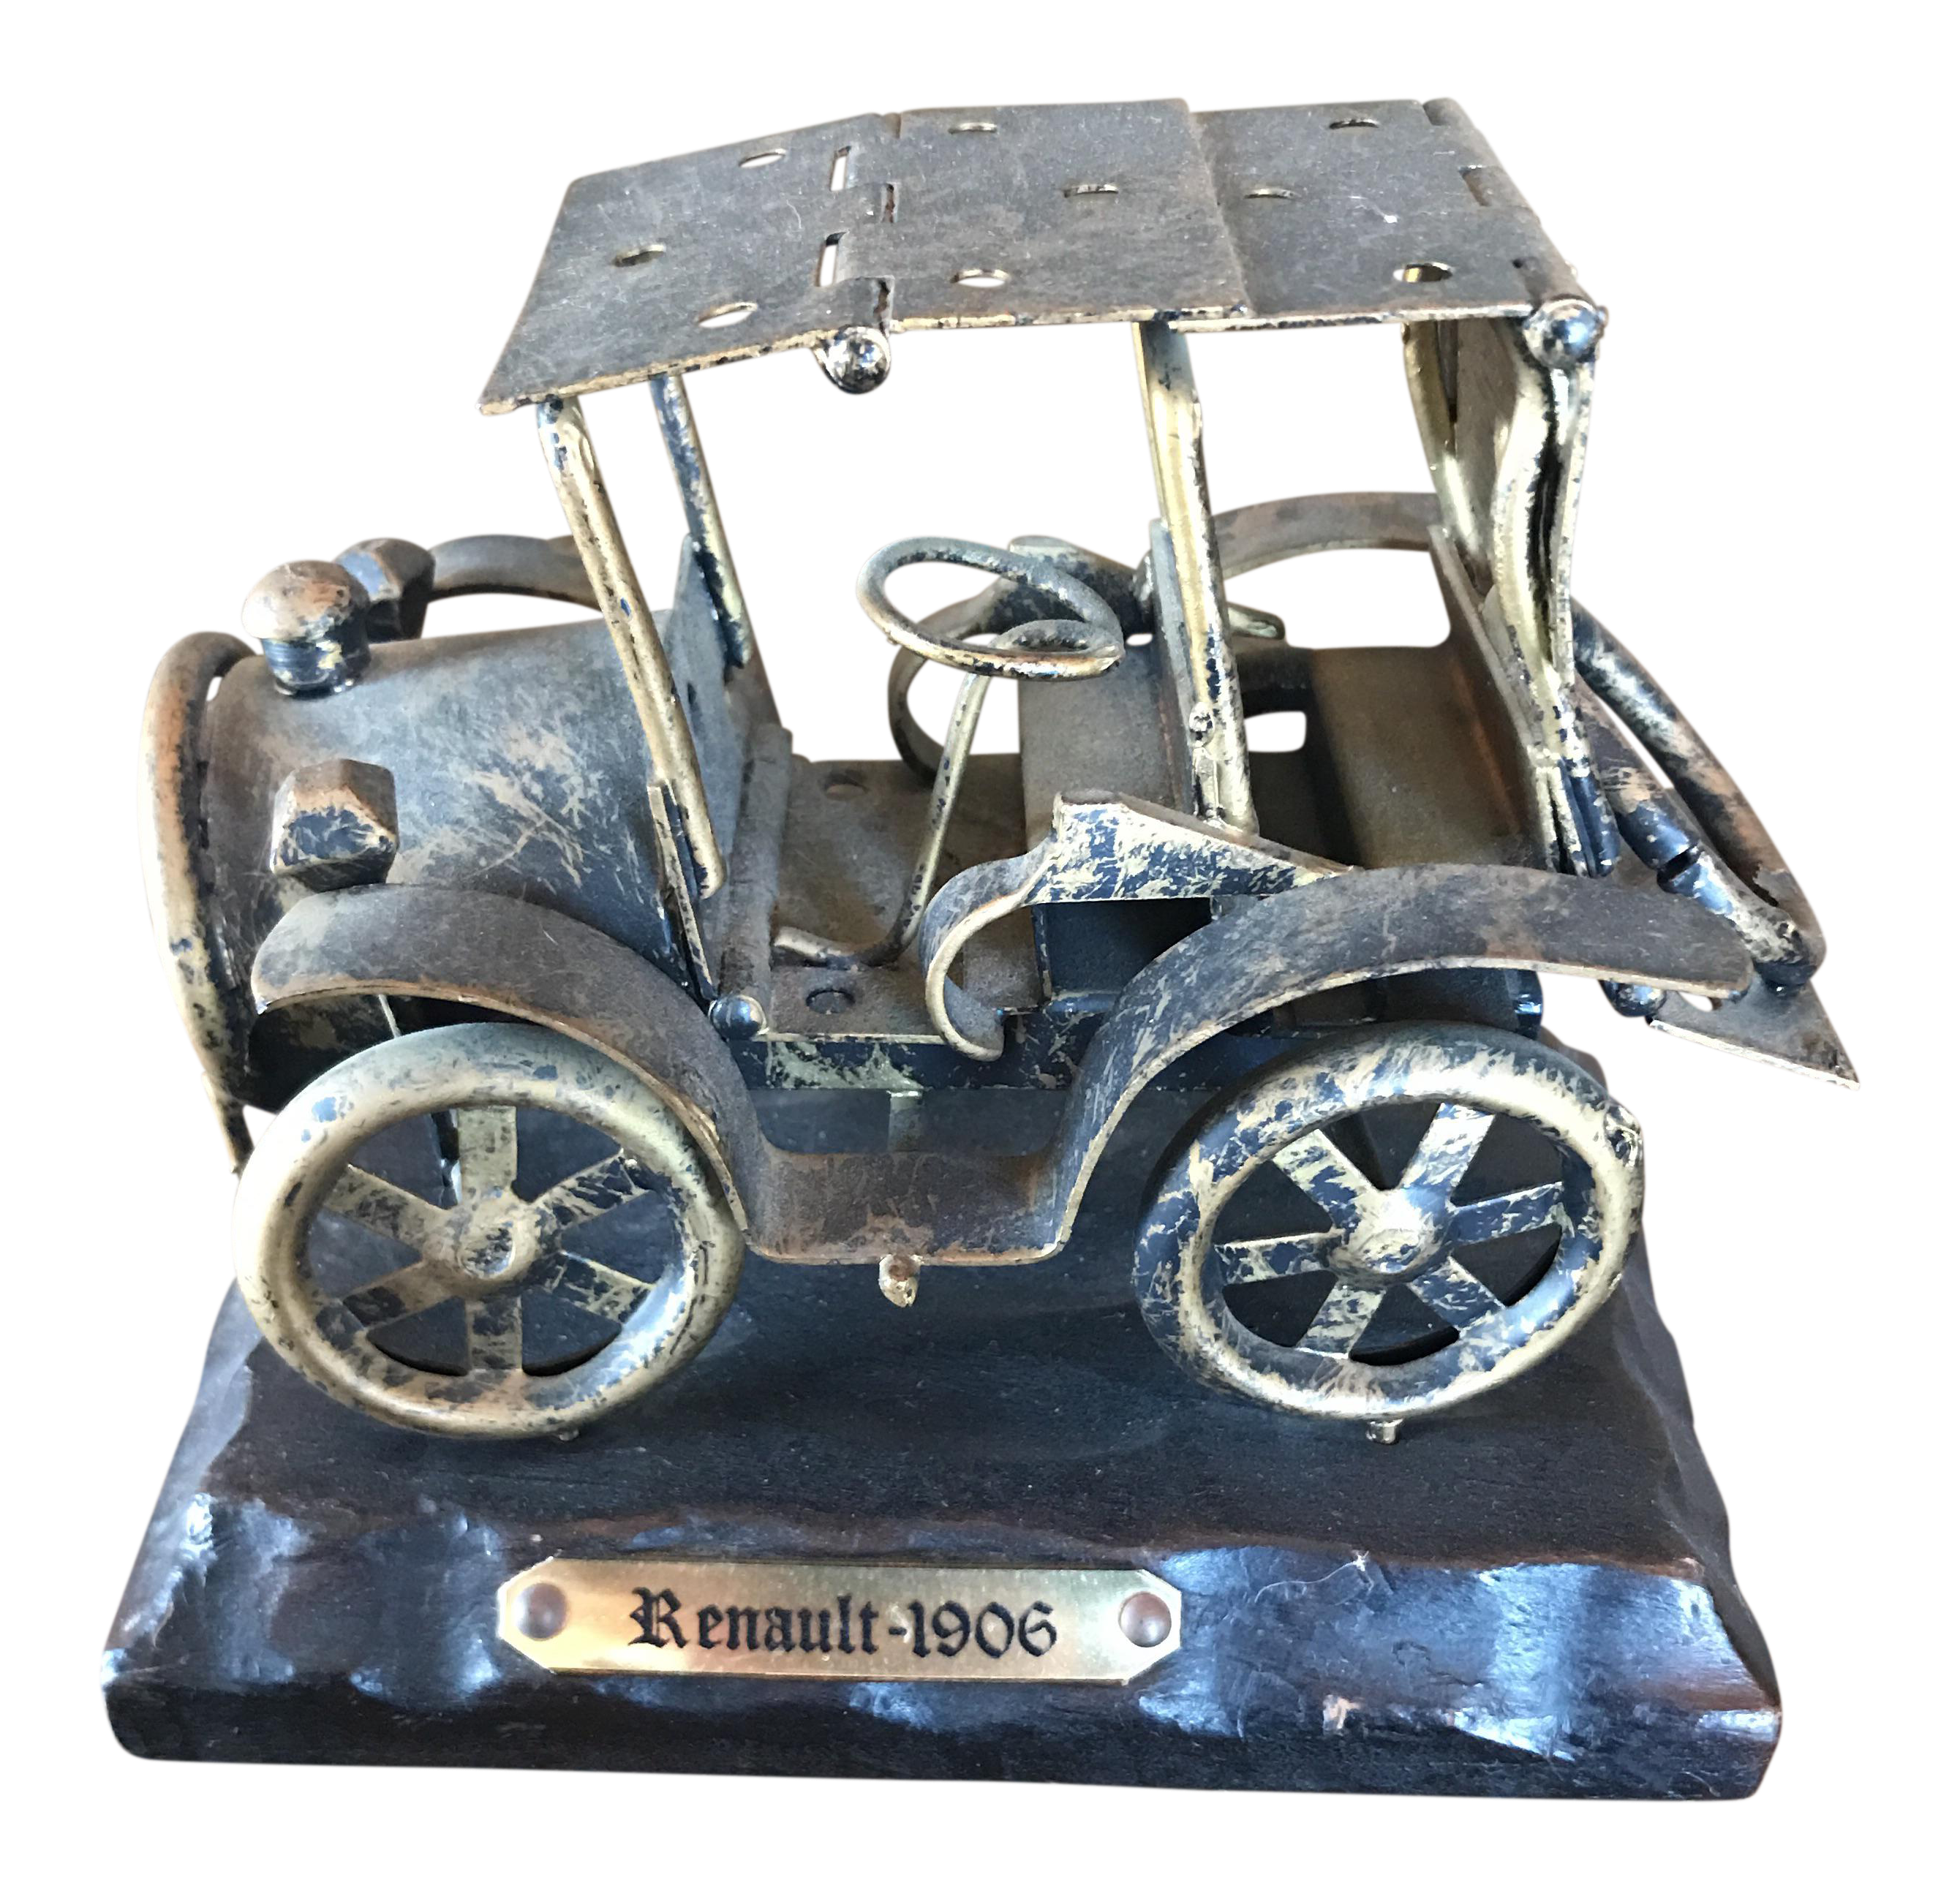 Vintage Renault Car Figurine | Chairish